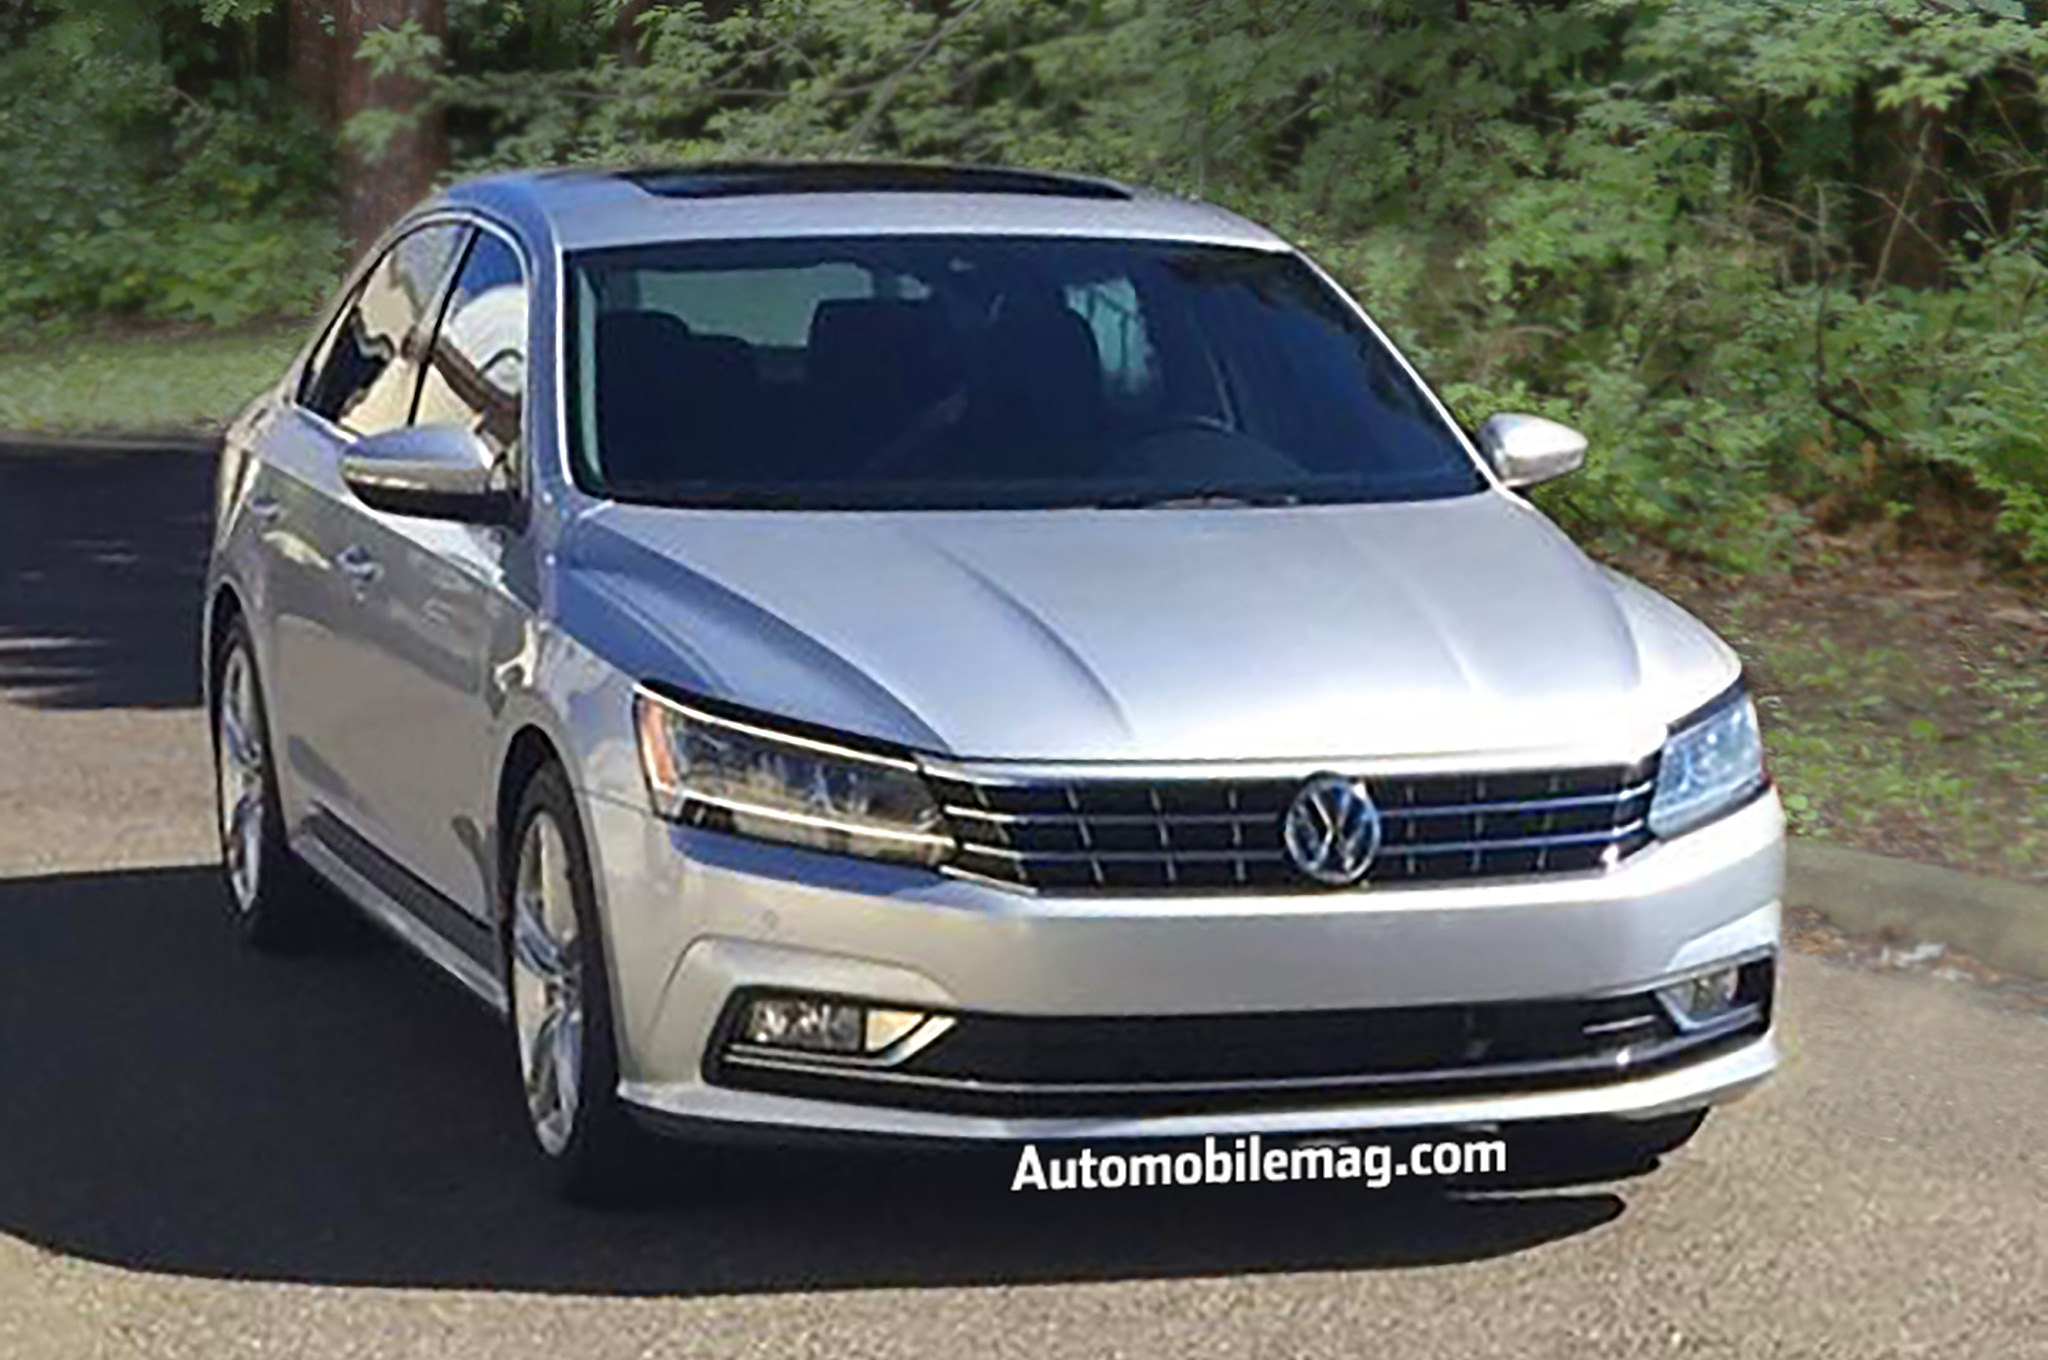 2016 volkswagen passat spied ahead of official debut. Black Bedroom Furniture Sets. Home Design Ideas